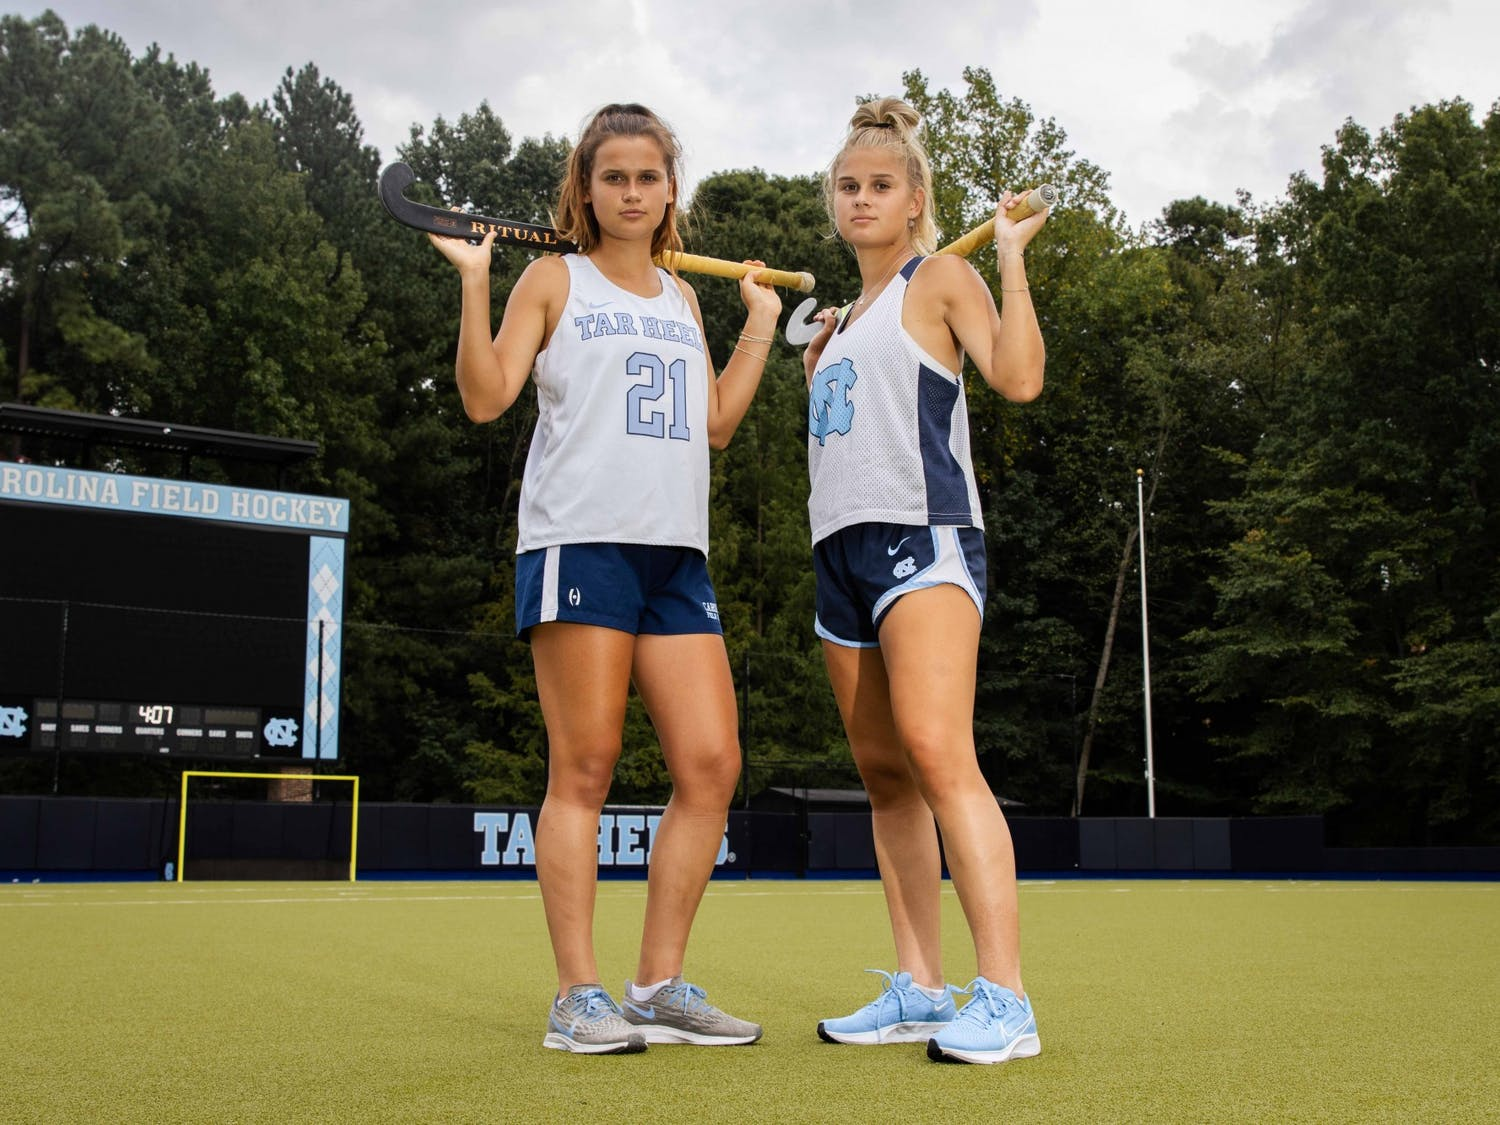 Sisters Eva and Jasmina Smolenaar are sharing one semester competing for the Tar Heels on the field hockey team. They are pictured in Karen Shelton Stadium on Sept. 8.